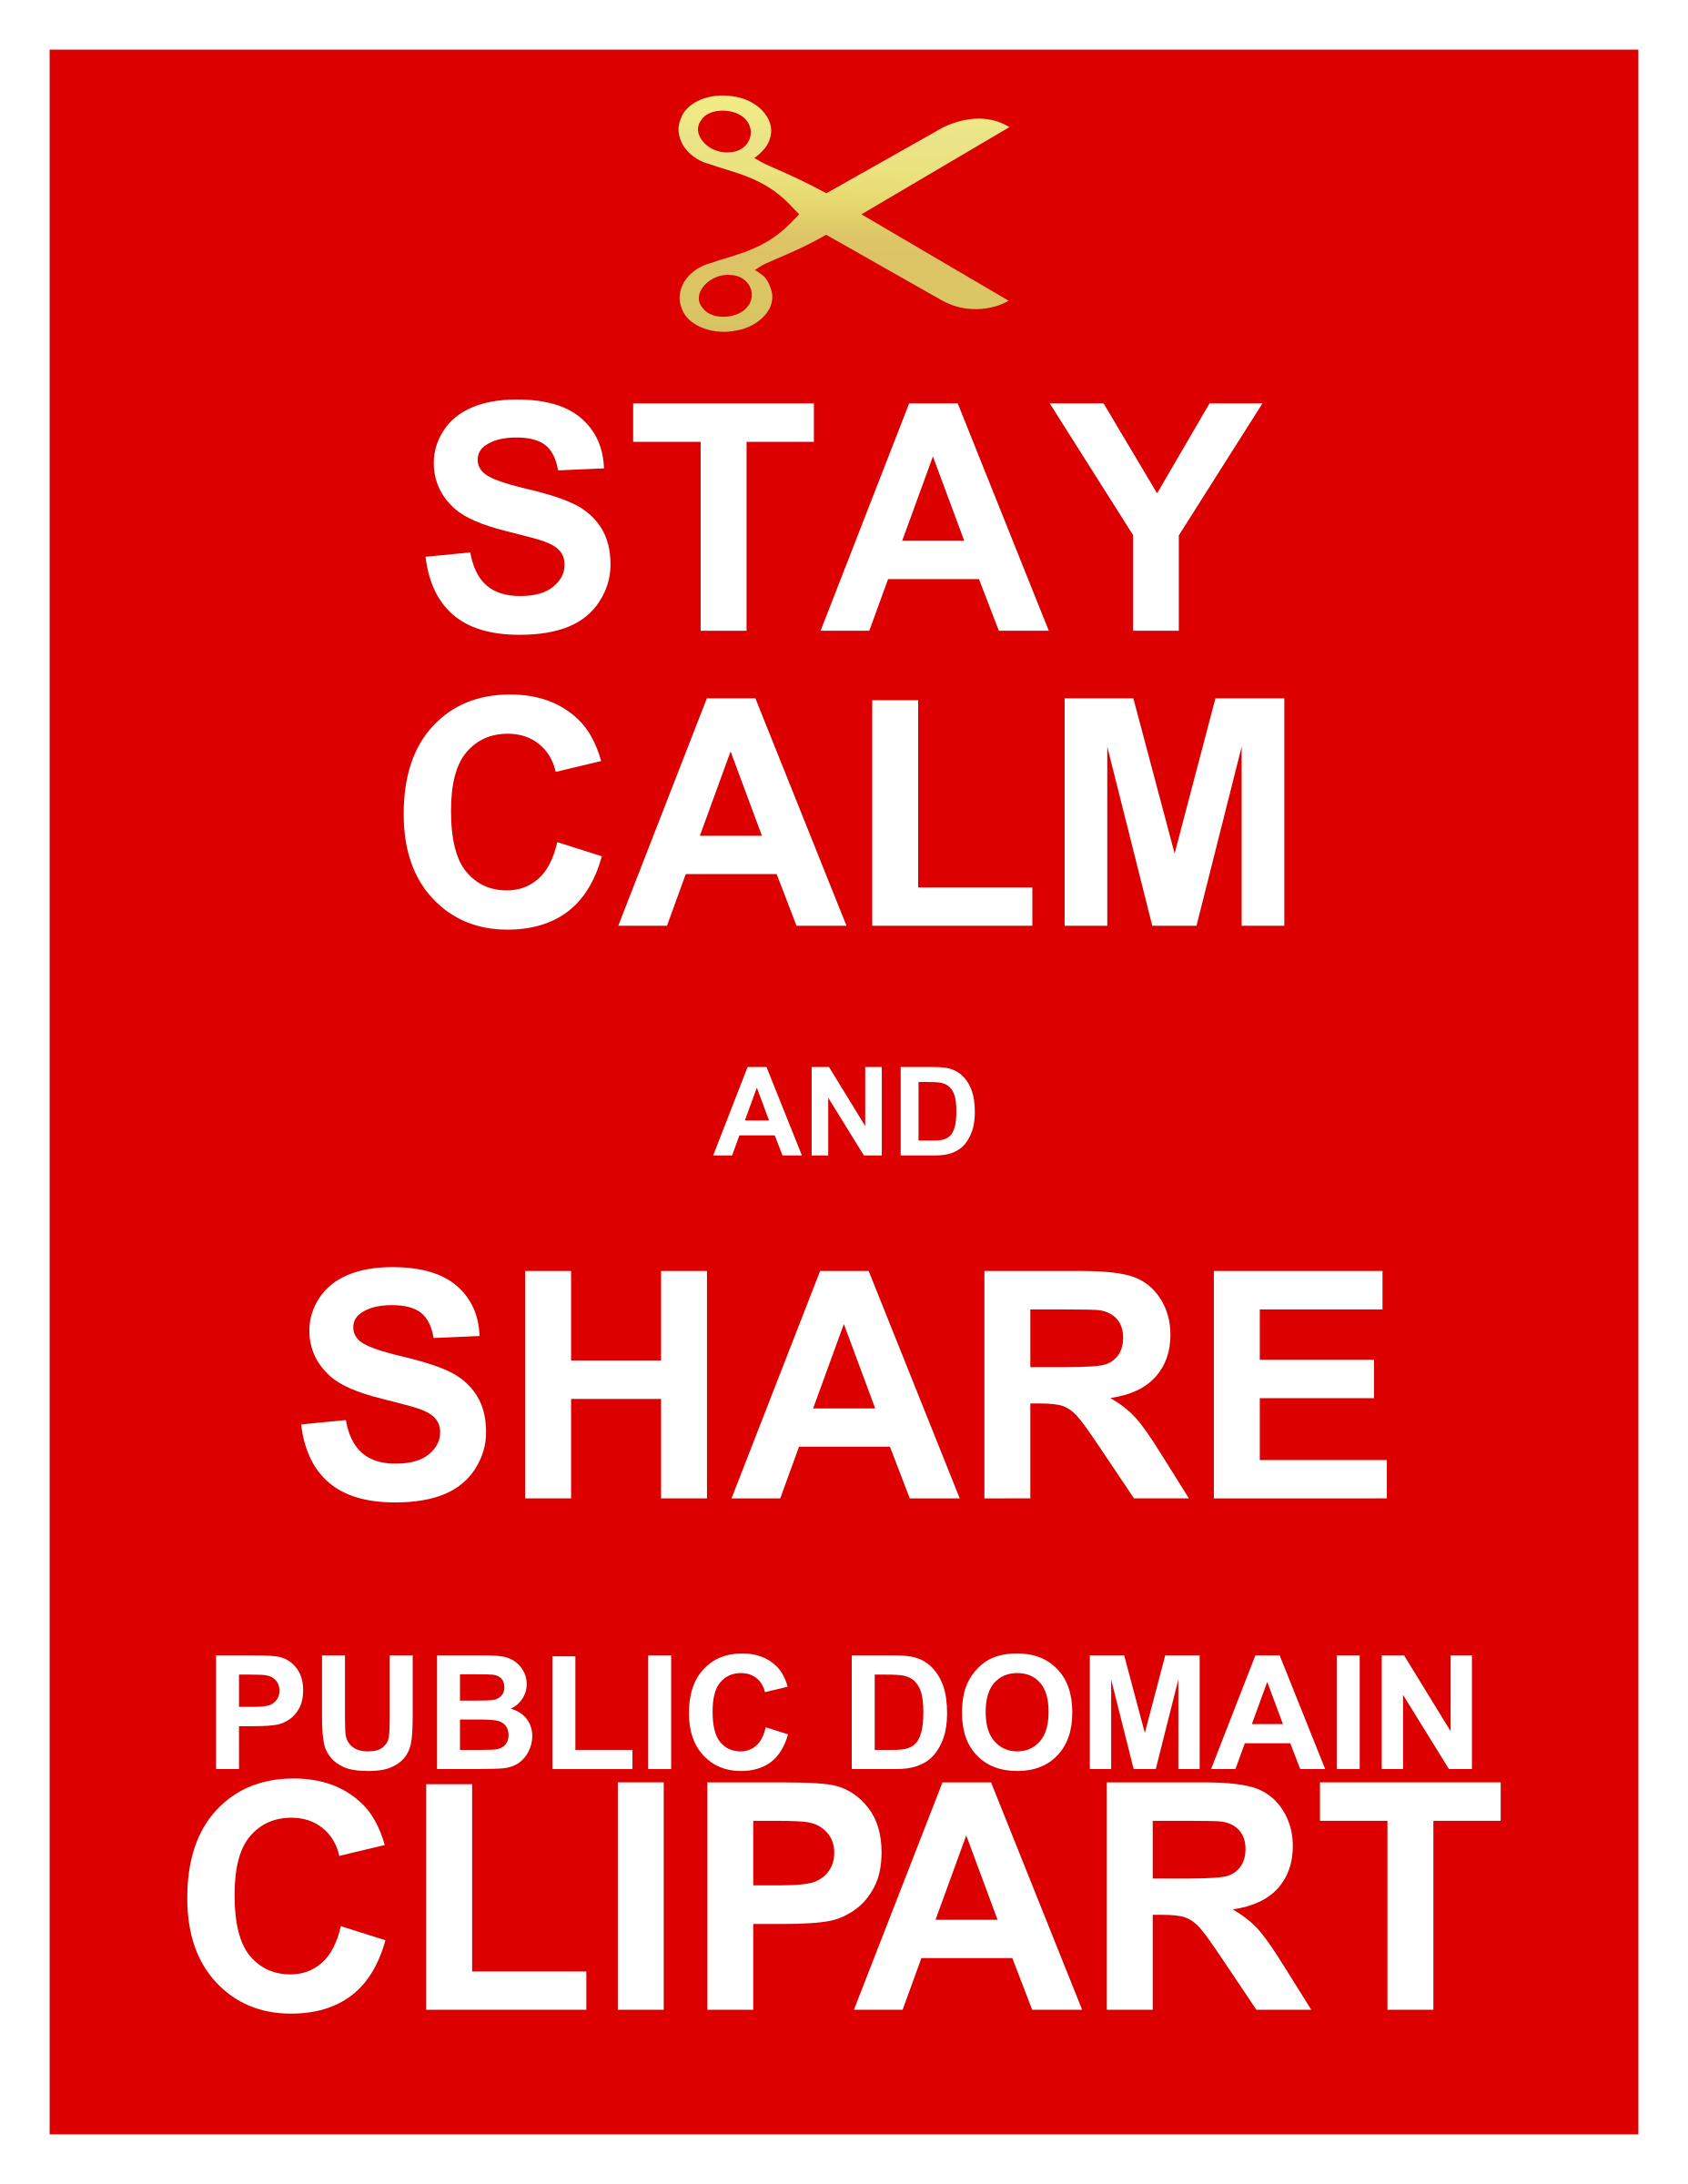 Share Clipart Sign by Arvin61r58